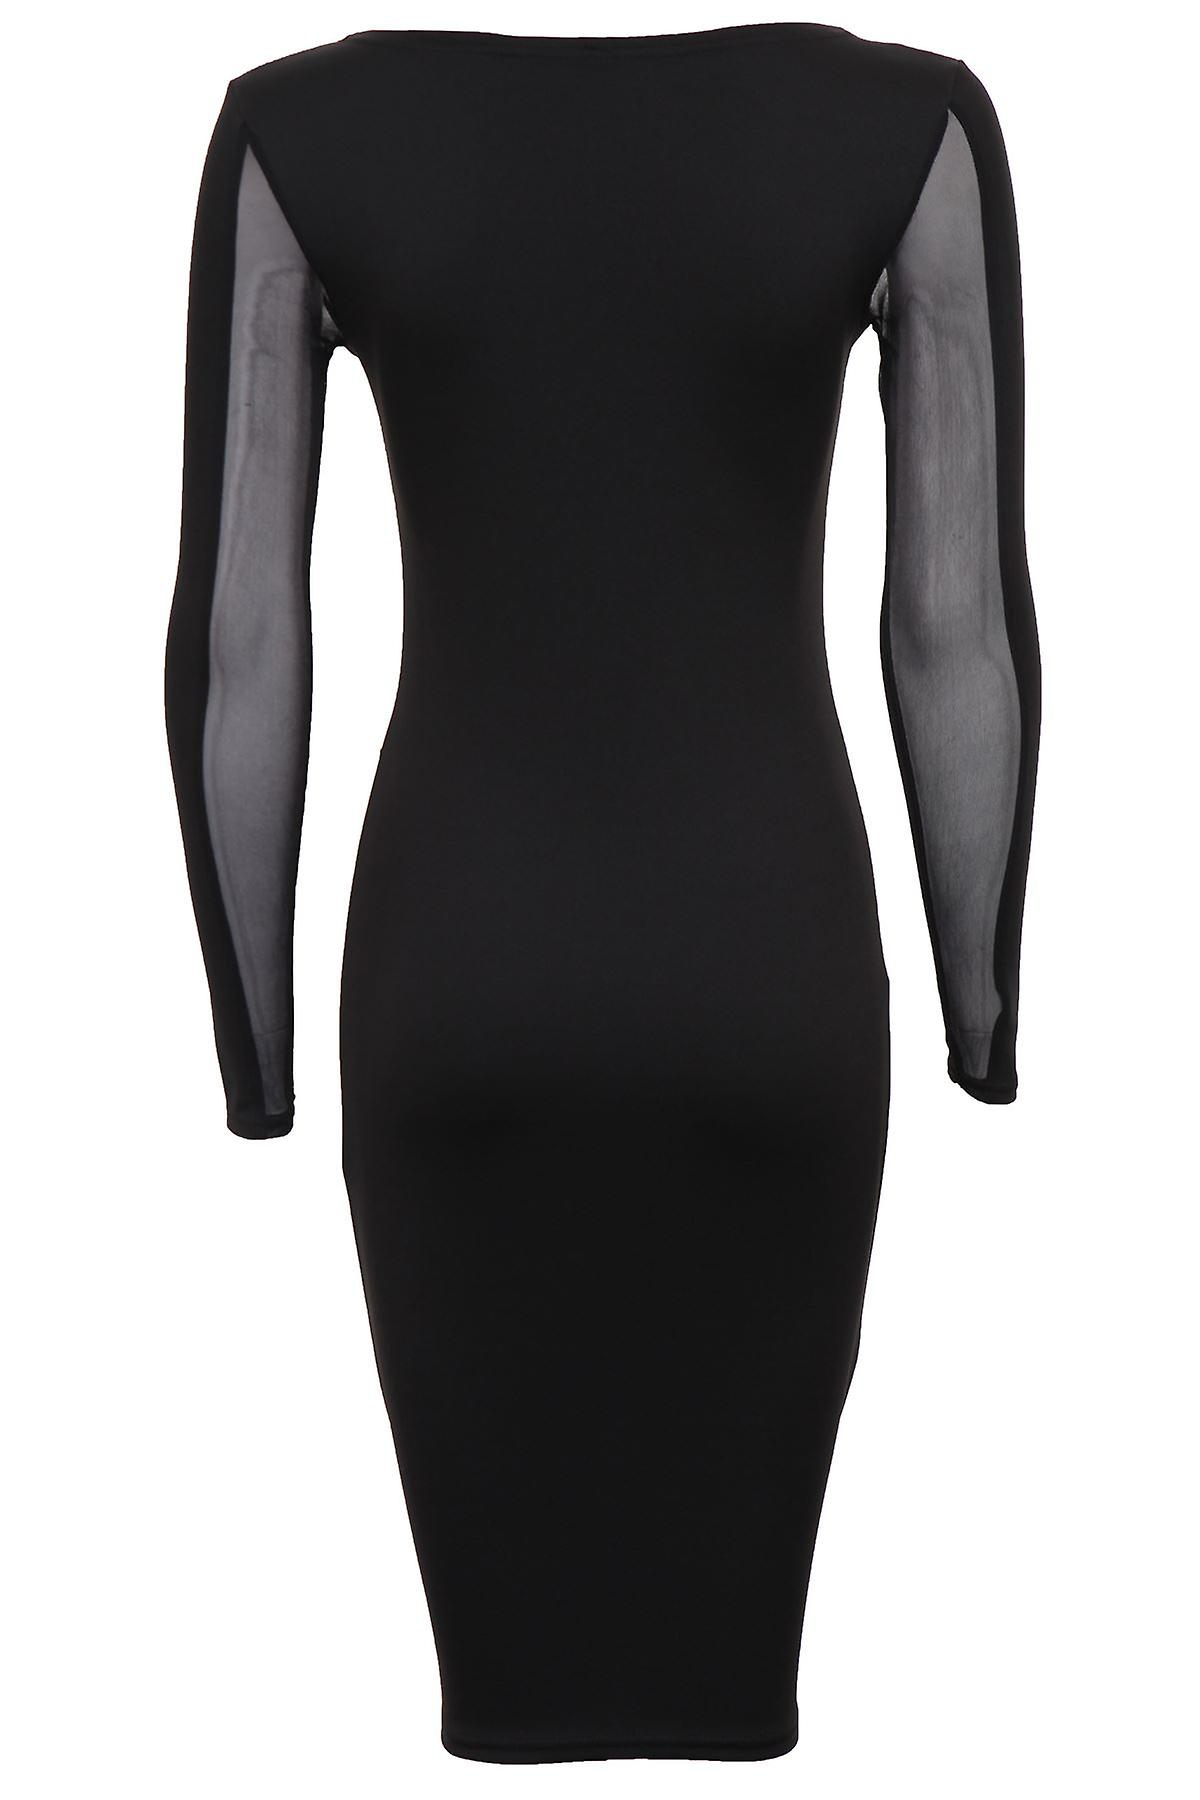 New Ladies Diamond Pattern Mesh Insert Slim Effect Women's Bodycon Dress